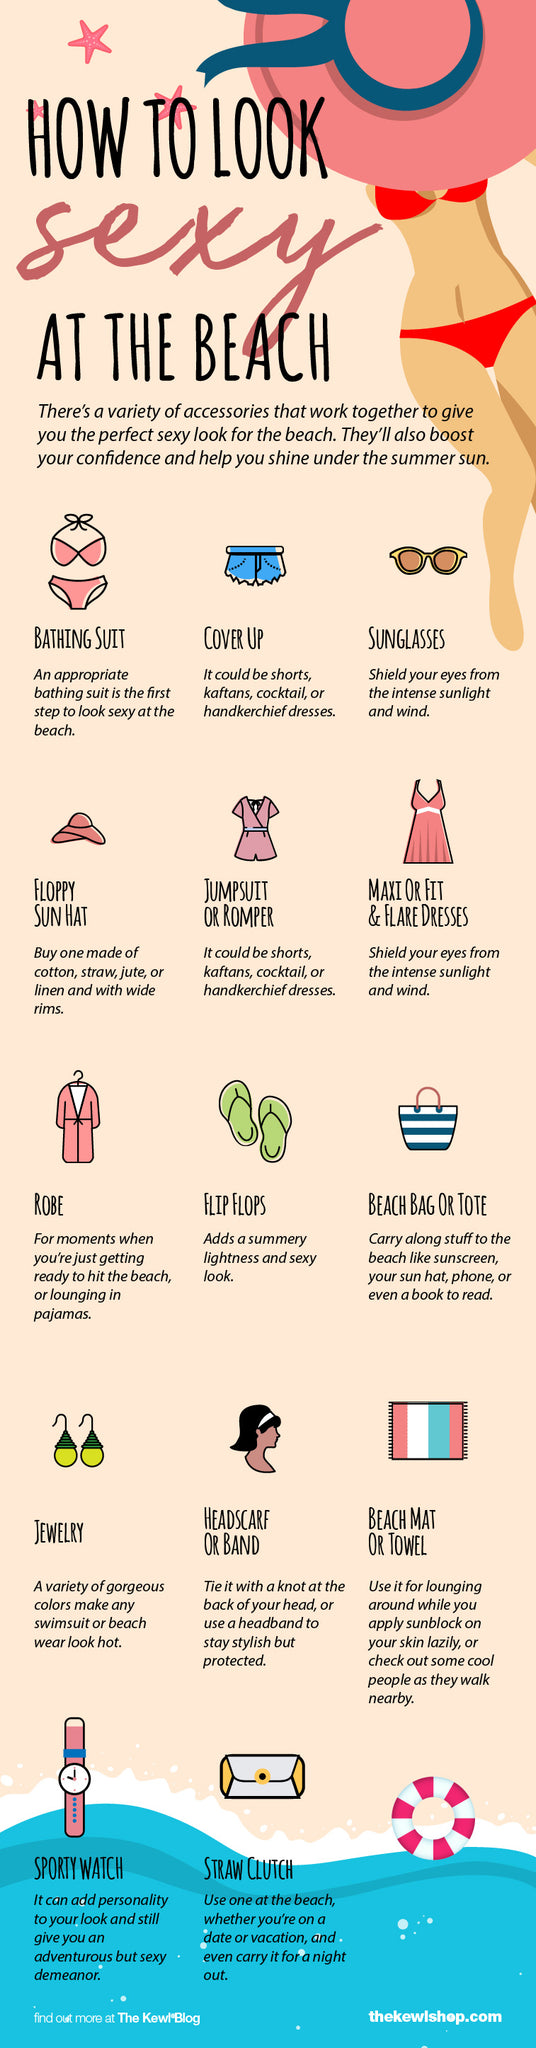 How To Look Sexy at the Beach, Infographic